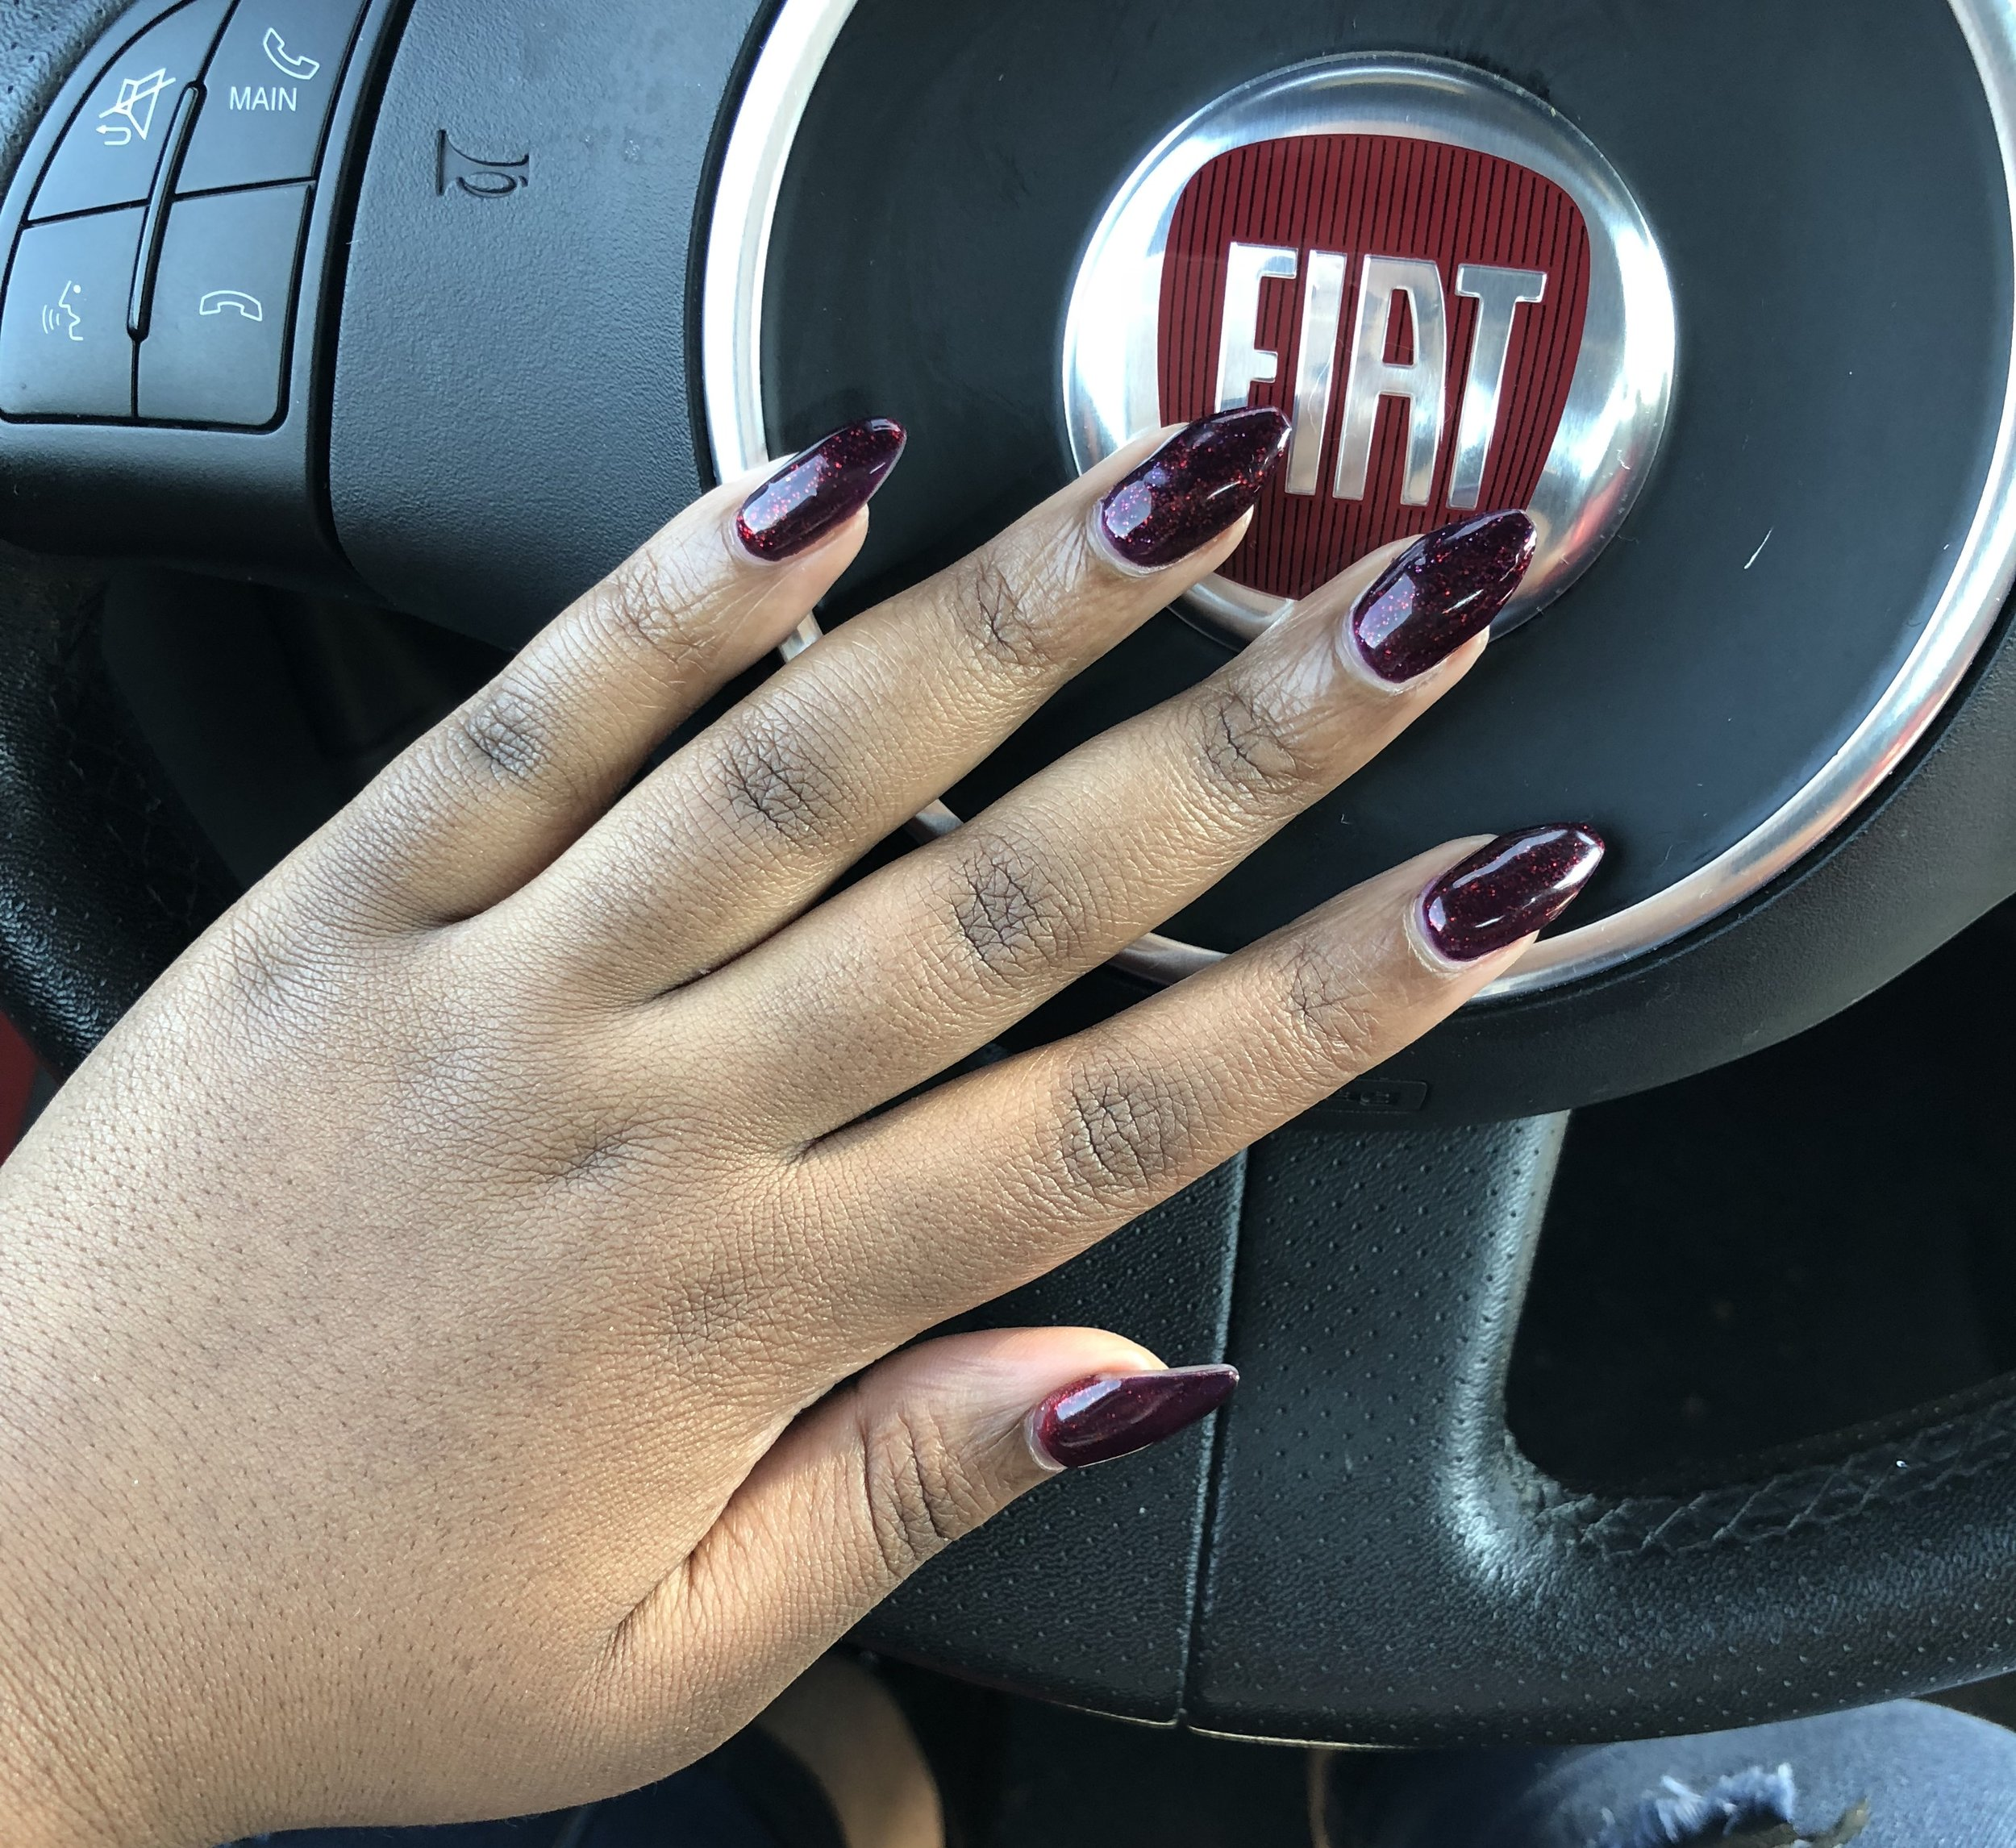 Purple nails appear when body temperature is cool.